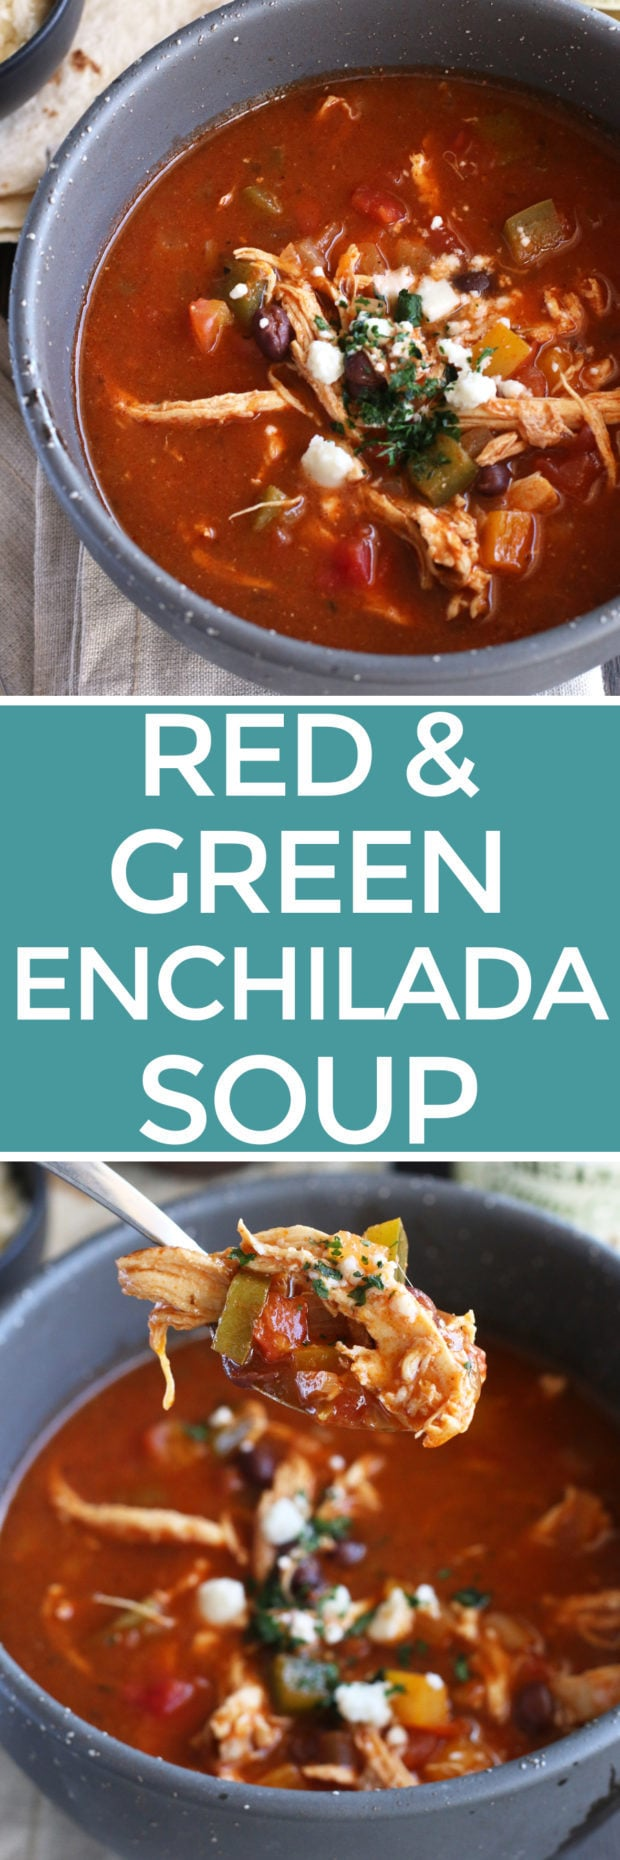 Red and Green Enchilada Soup